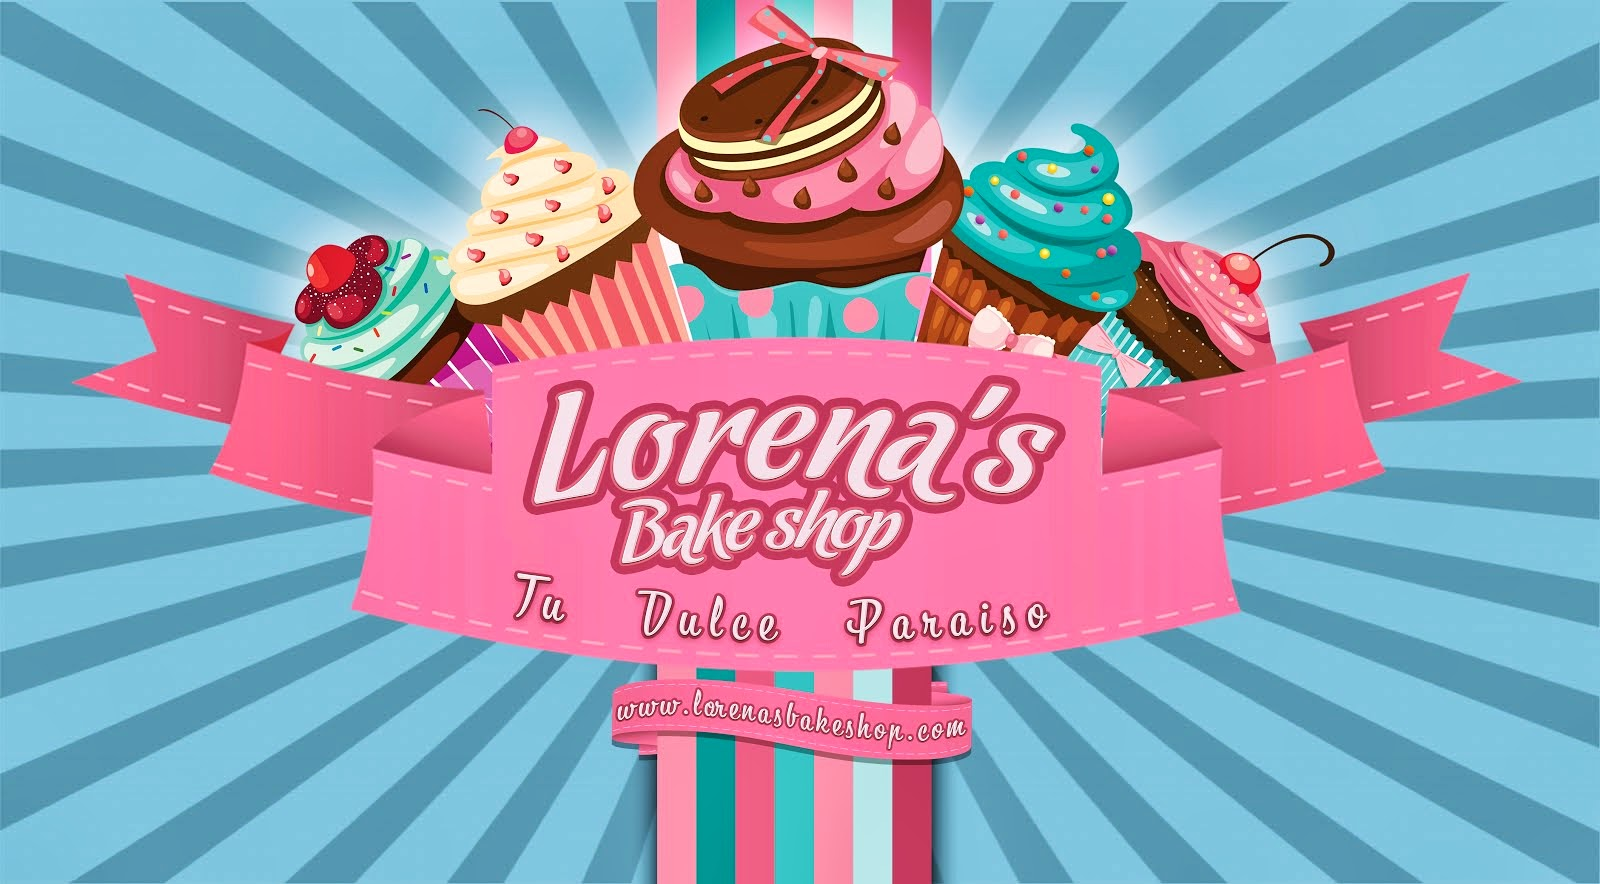 Lorena's Bake Shop